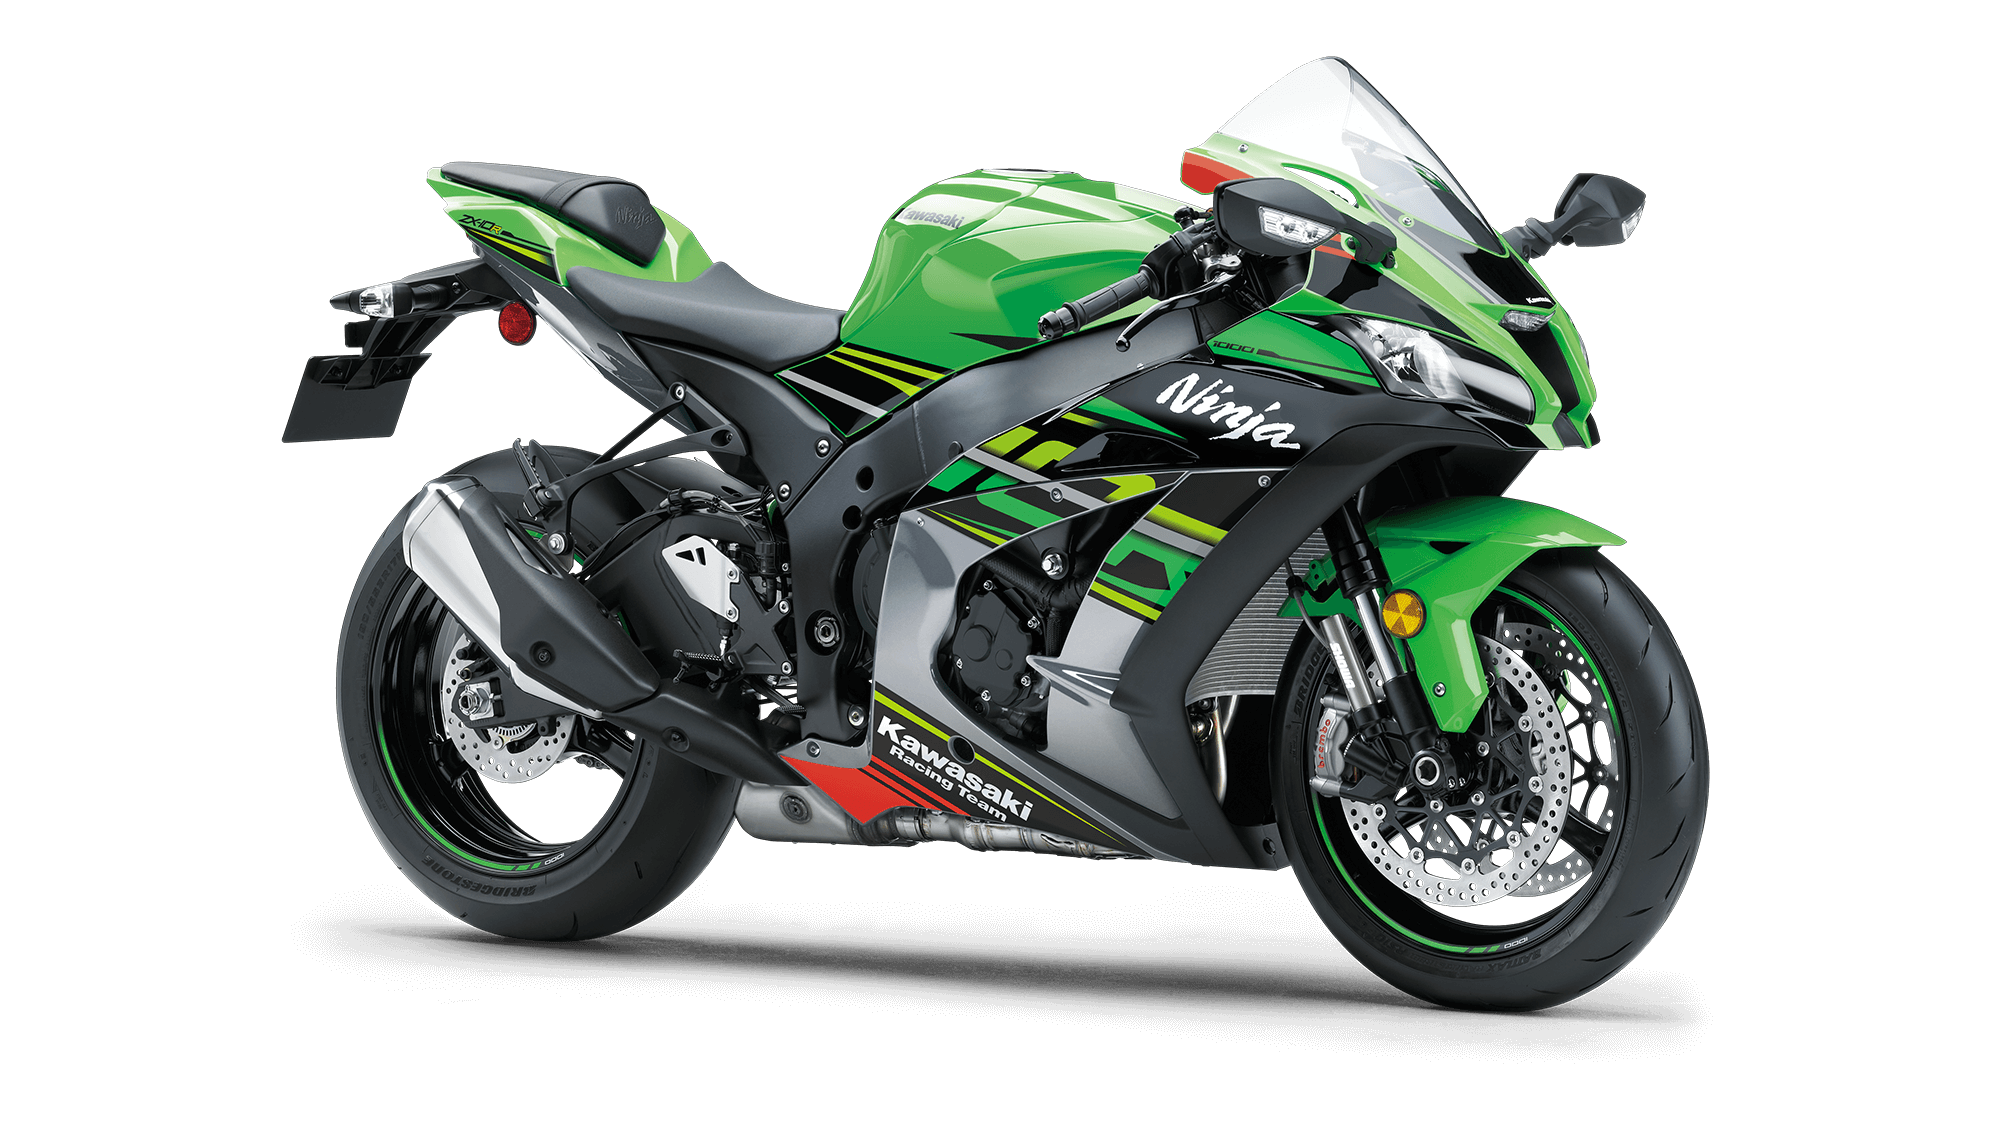 2019 Ninja Zx 10r Abs Krt Edition Ninja Motorcycle By Kawasaki